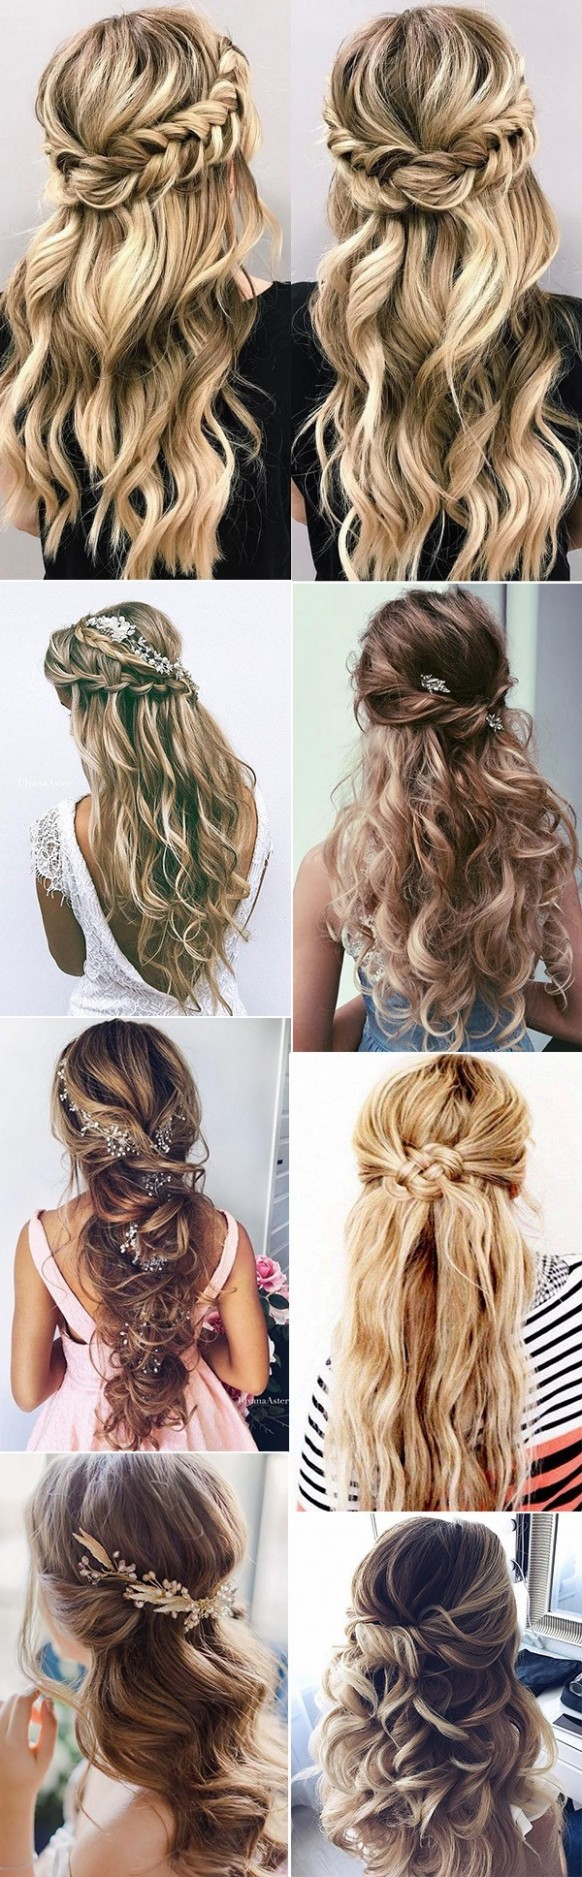 12 Chic Half Up Half Down Wedding Hairstyles For Long Hair Wedding Hairstyles For Long Hair Half Up